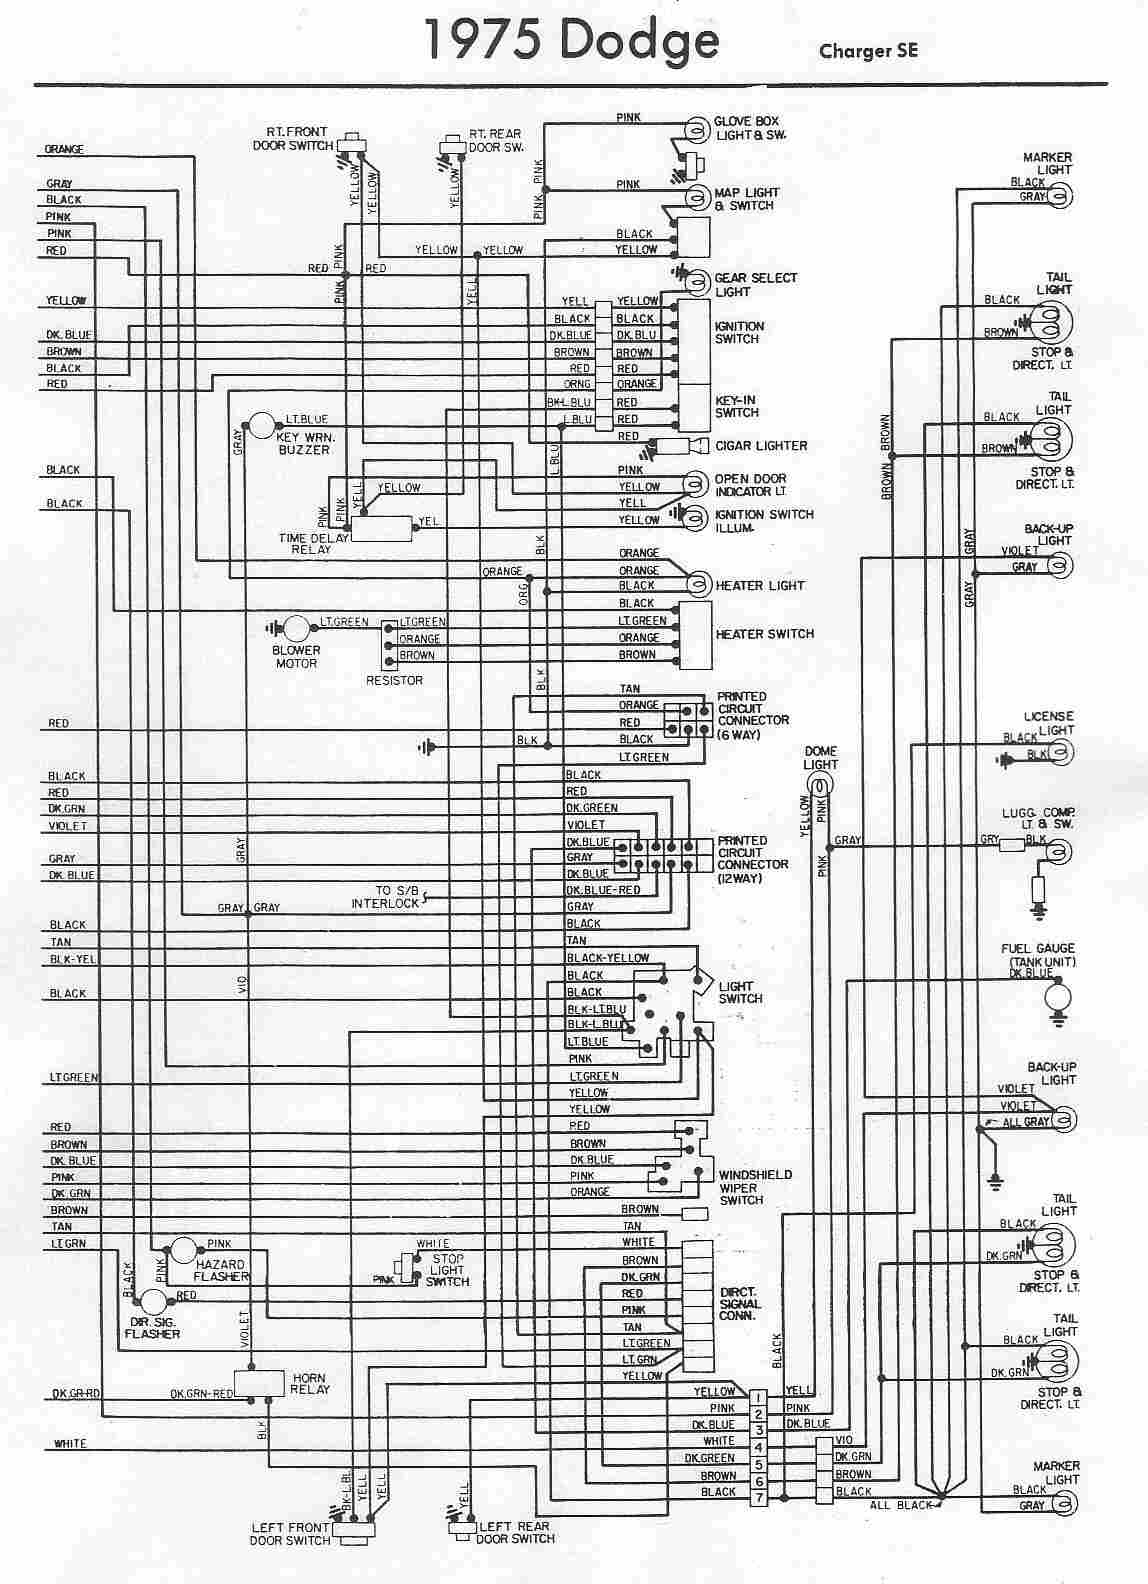 1990 Ram 250 Fuse Diagram Wiring Box 75 F250 Dodge W150 Enthusiast Diagrams U2022 Rh Rasalibre Co 2004 2002 Panel